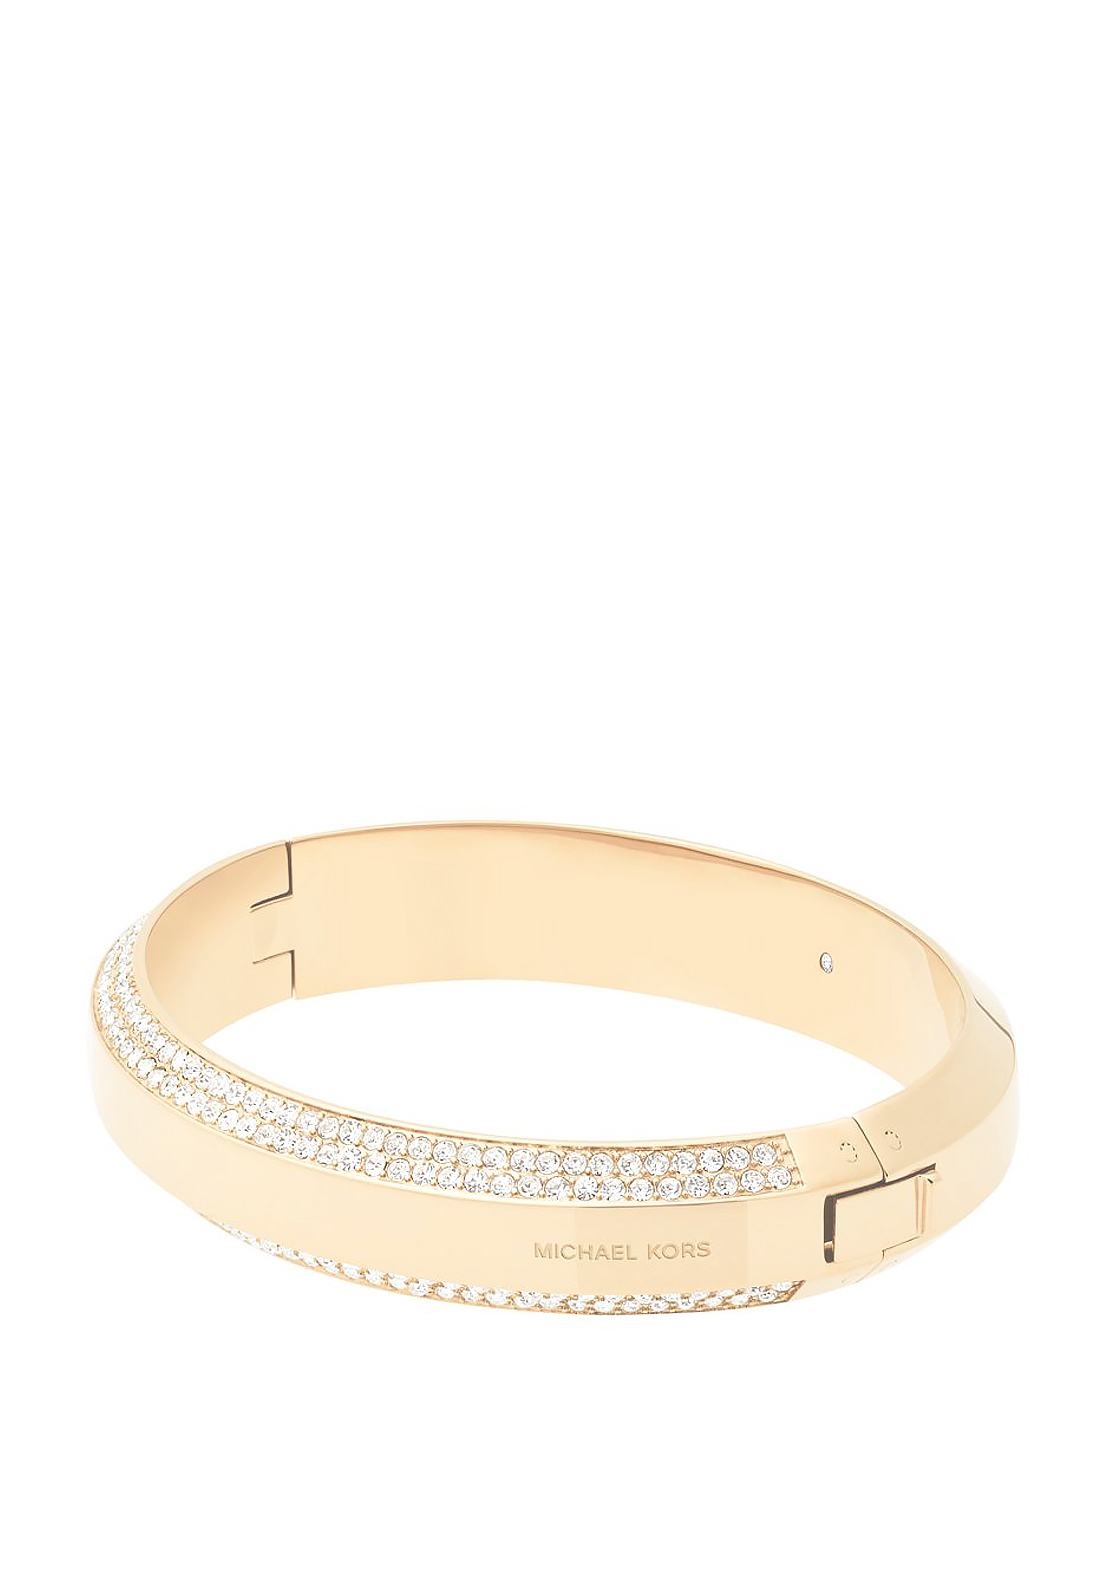 Michael Kors Pave Stone Hinge Bangle, Gold